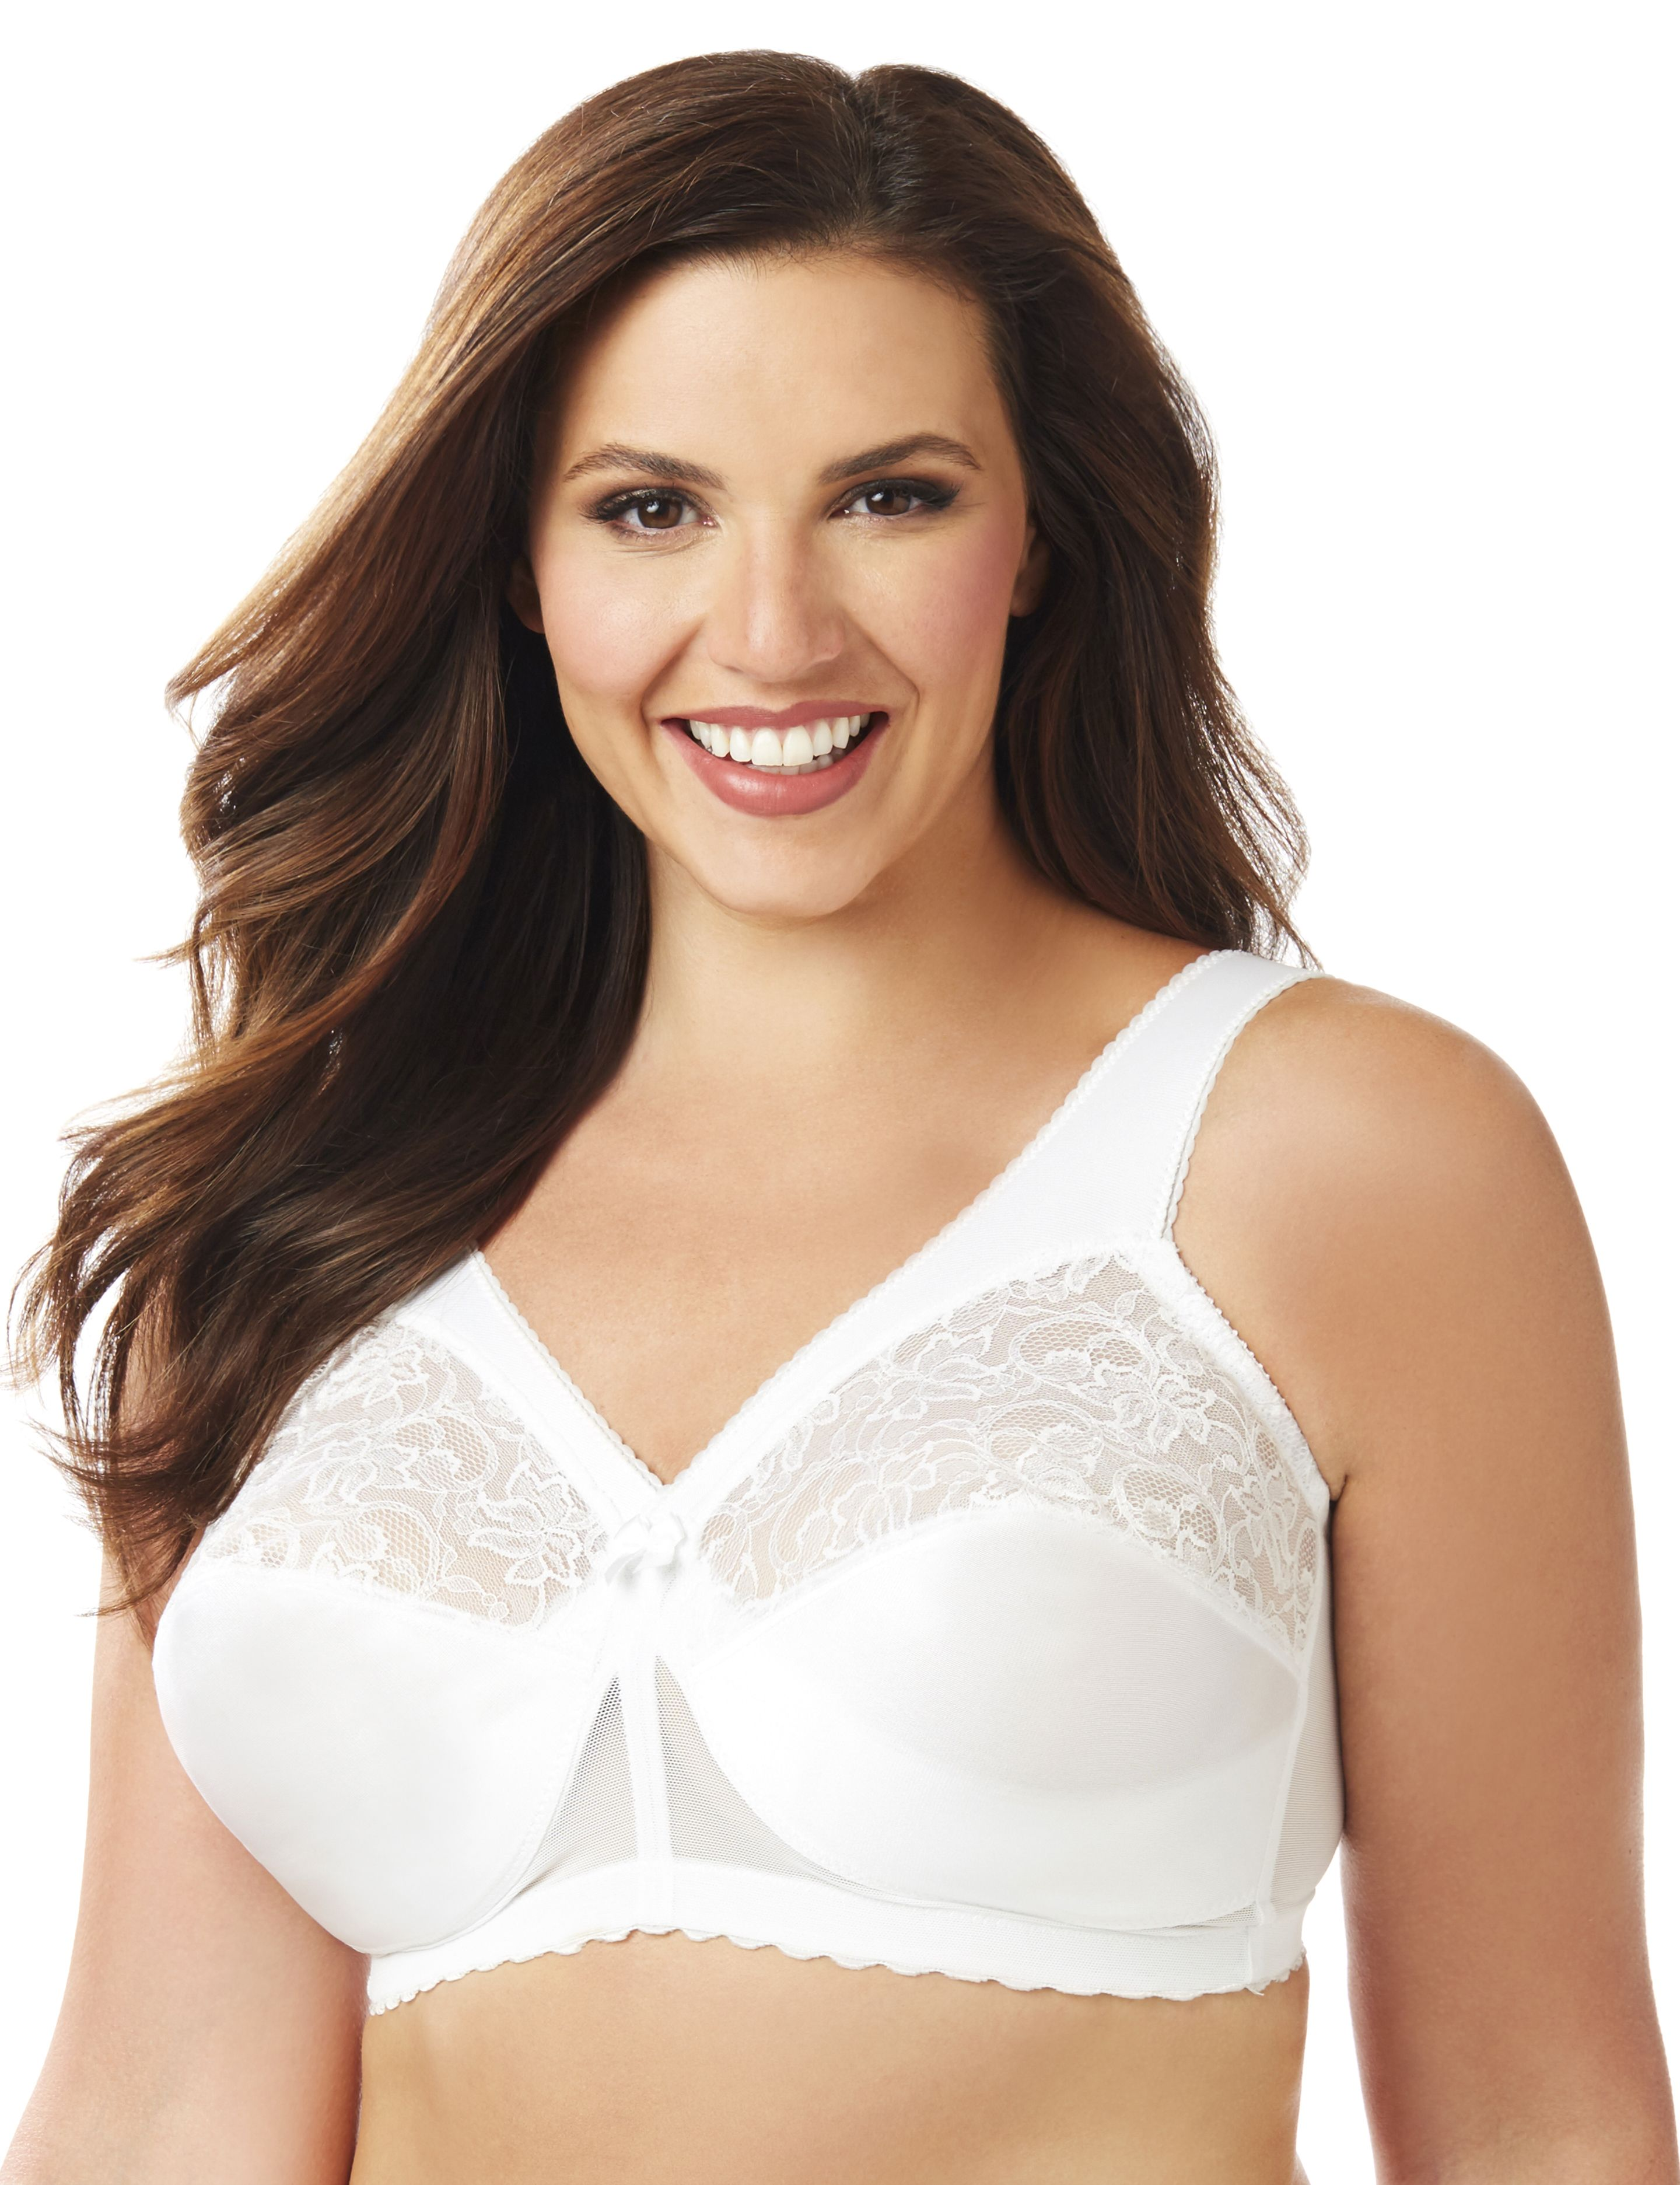 Glamorise 1000 Magic Lift No-Wire Bra Glamorise 1000 Magic Lift No-Wire Bra MP-000156861